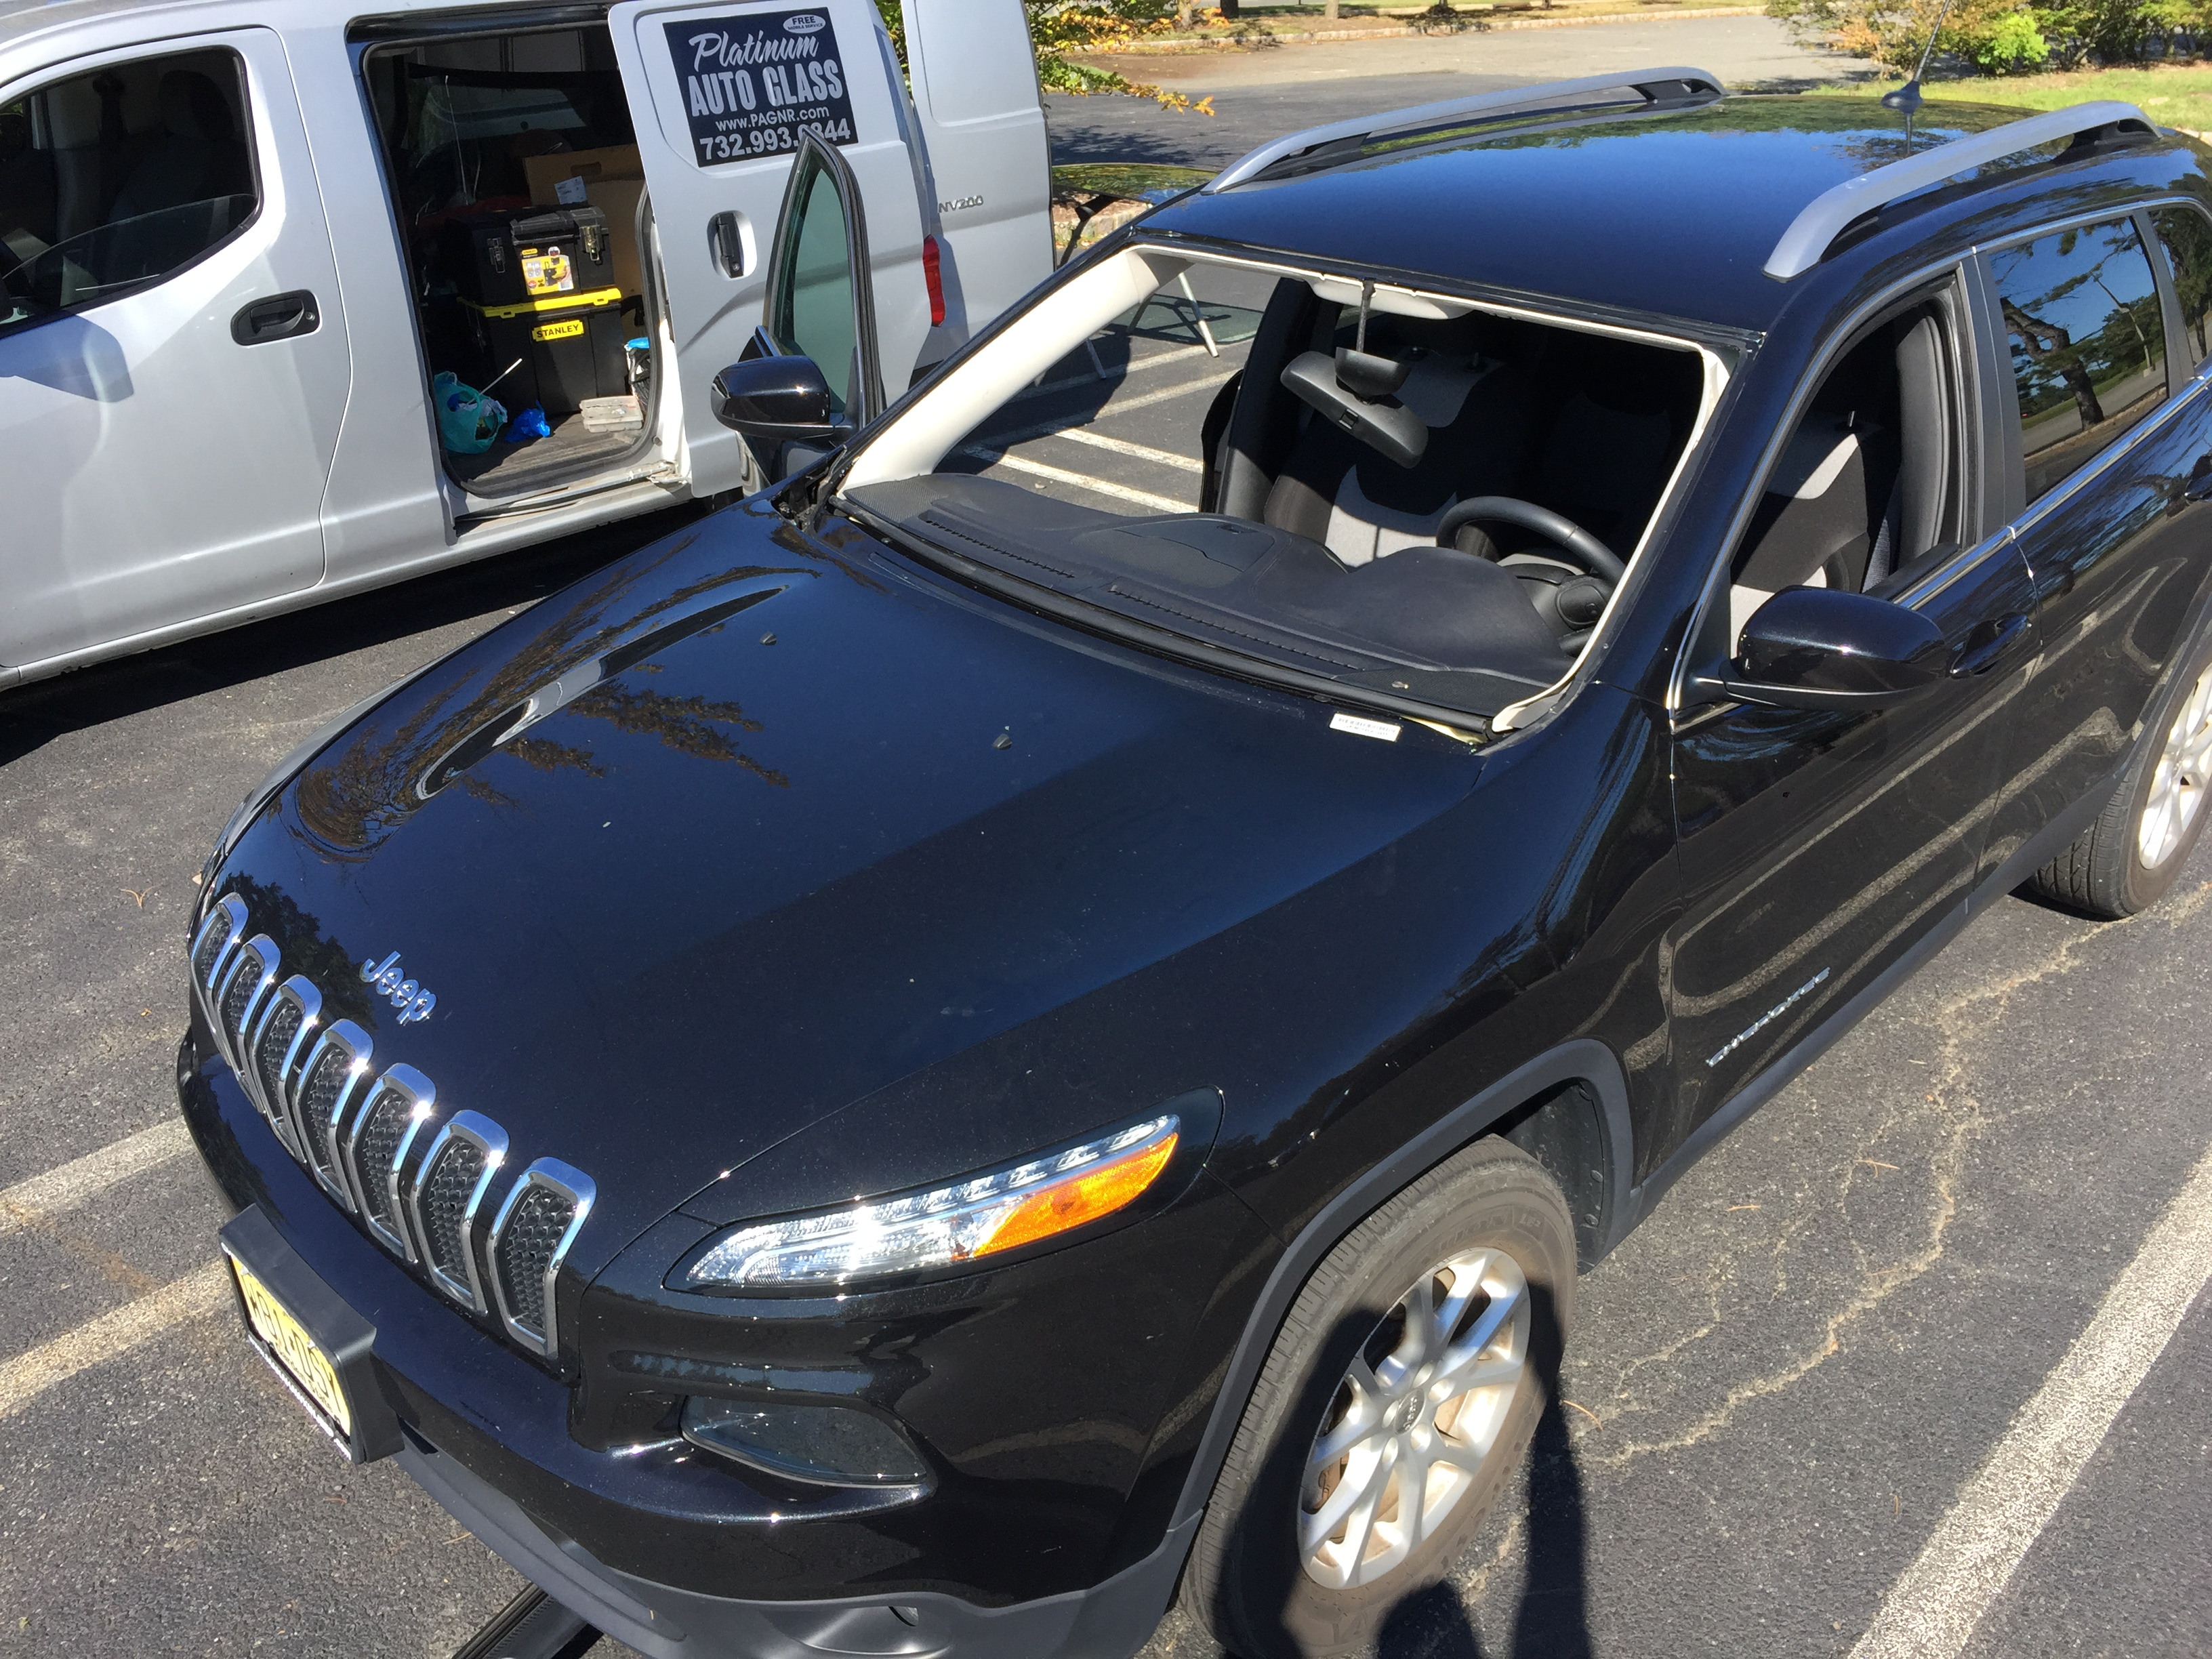 Before cut out 2017 Jeep Cherokee OEM Mopar Windshield Replacement Platinum Auto Glass Repair New Jersey  in Central New Jersey 07036platinumautoglassnj.com